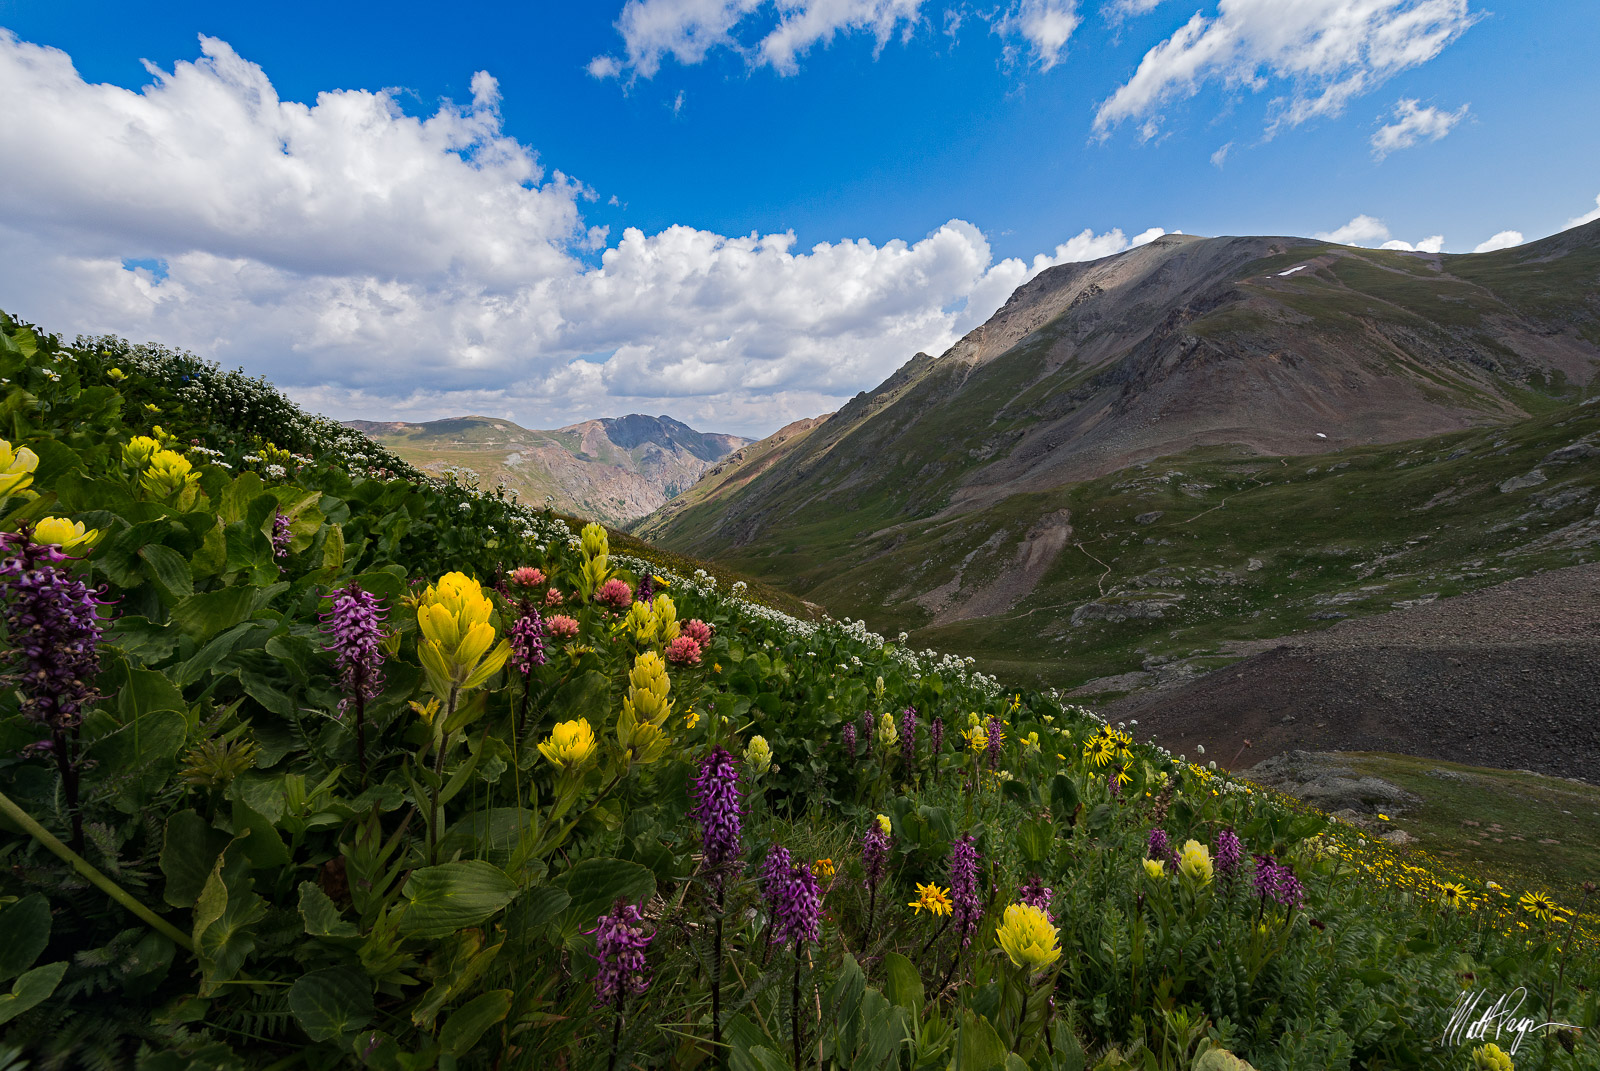 Blue sky, Colorado, Landscape, Mountains, Wildflowers, Handies Peak, American Basin, Jones Mountain, photo